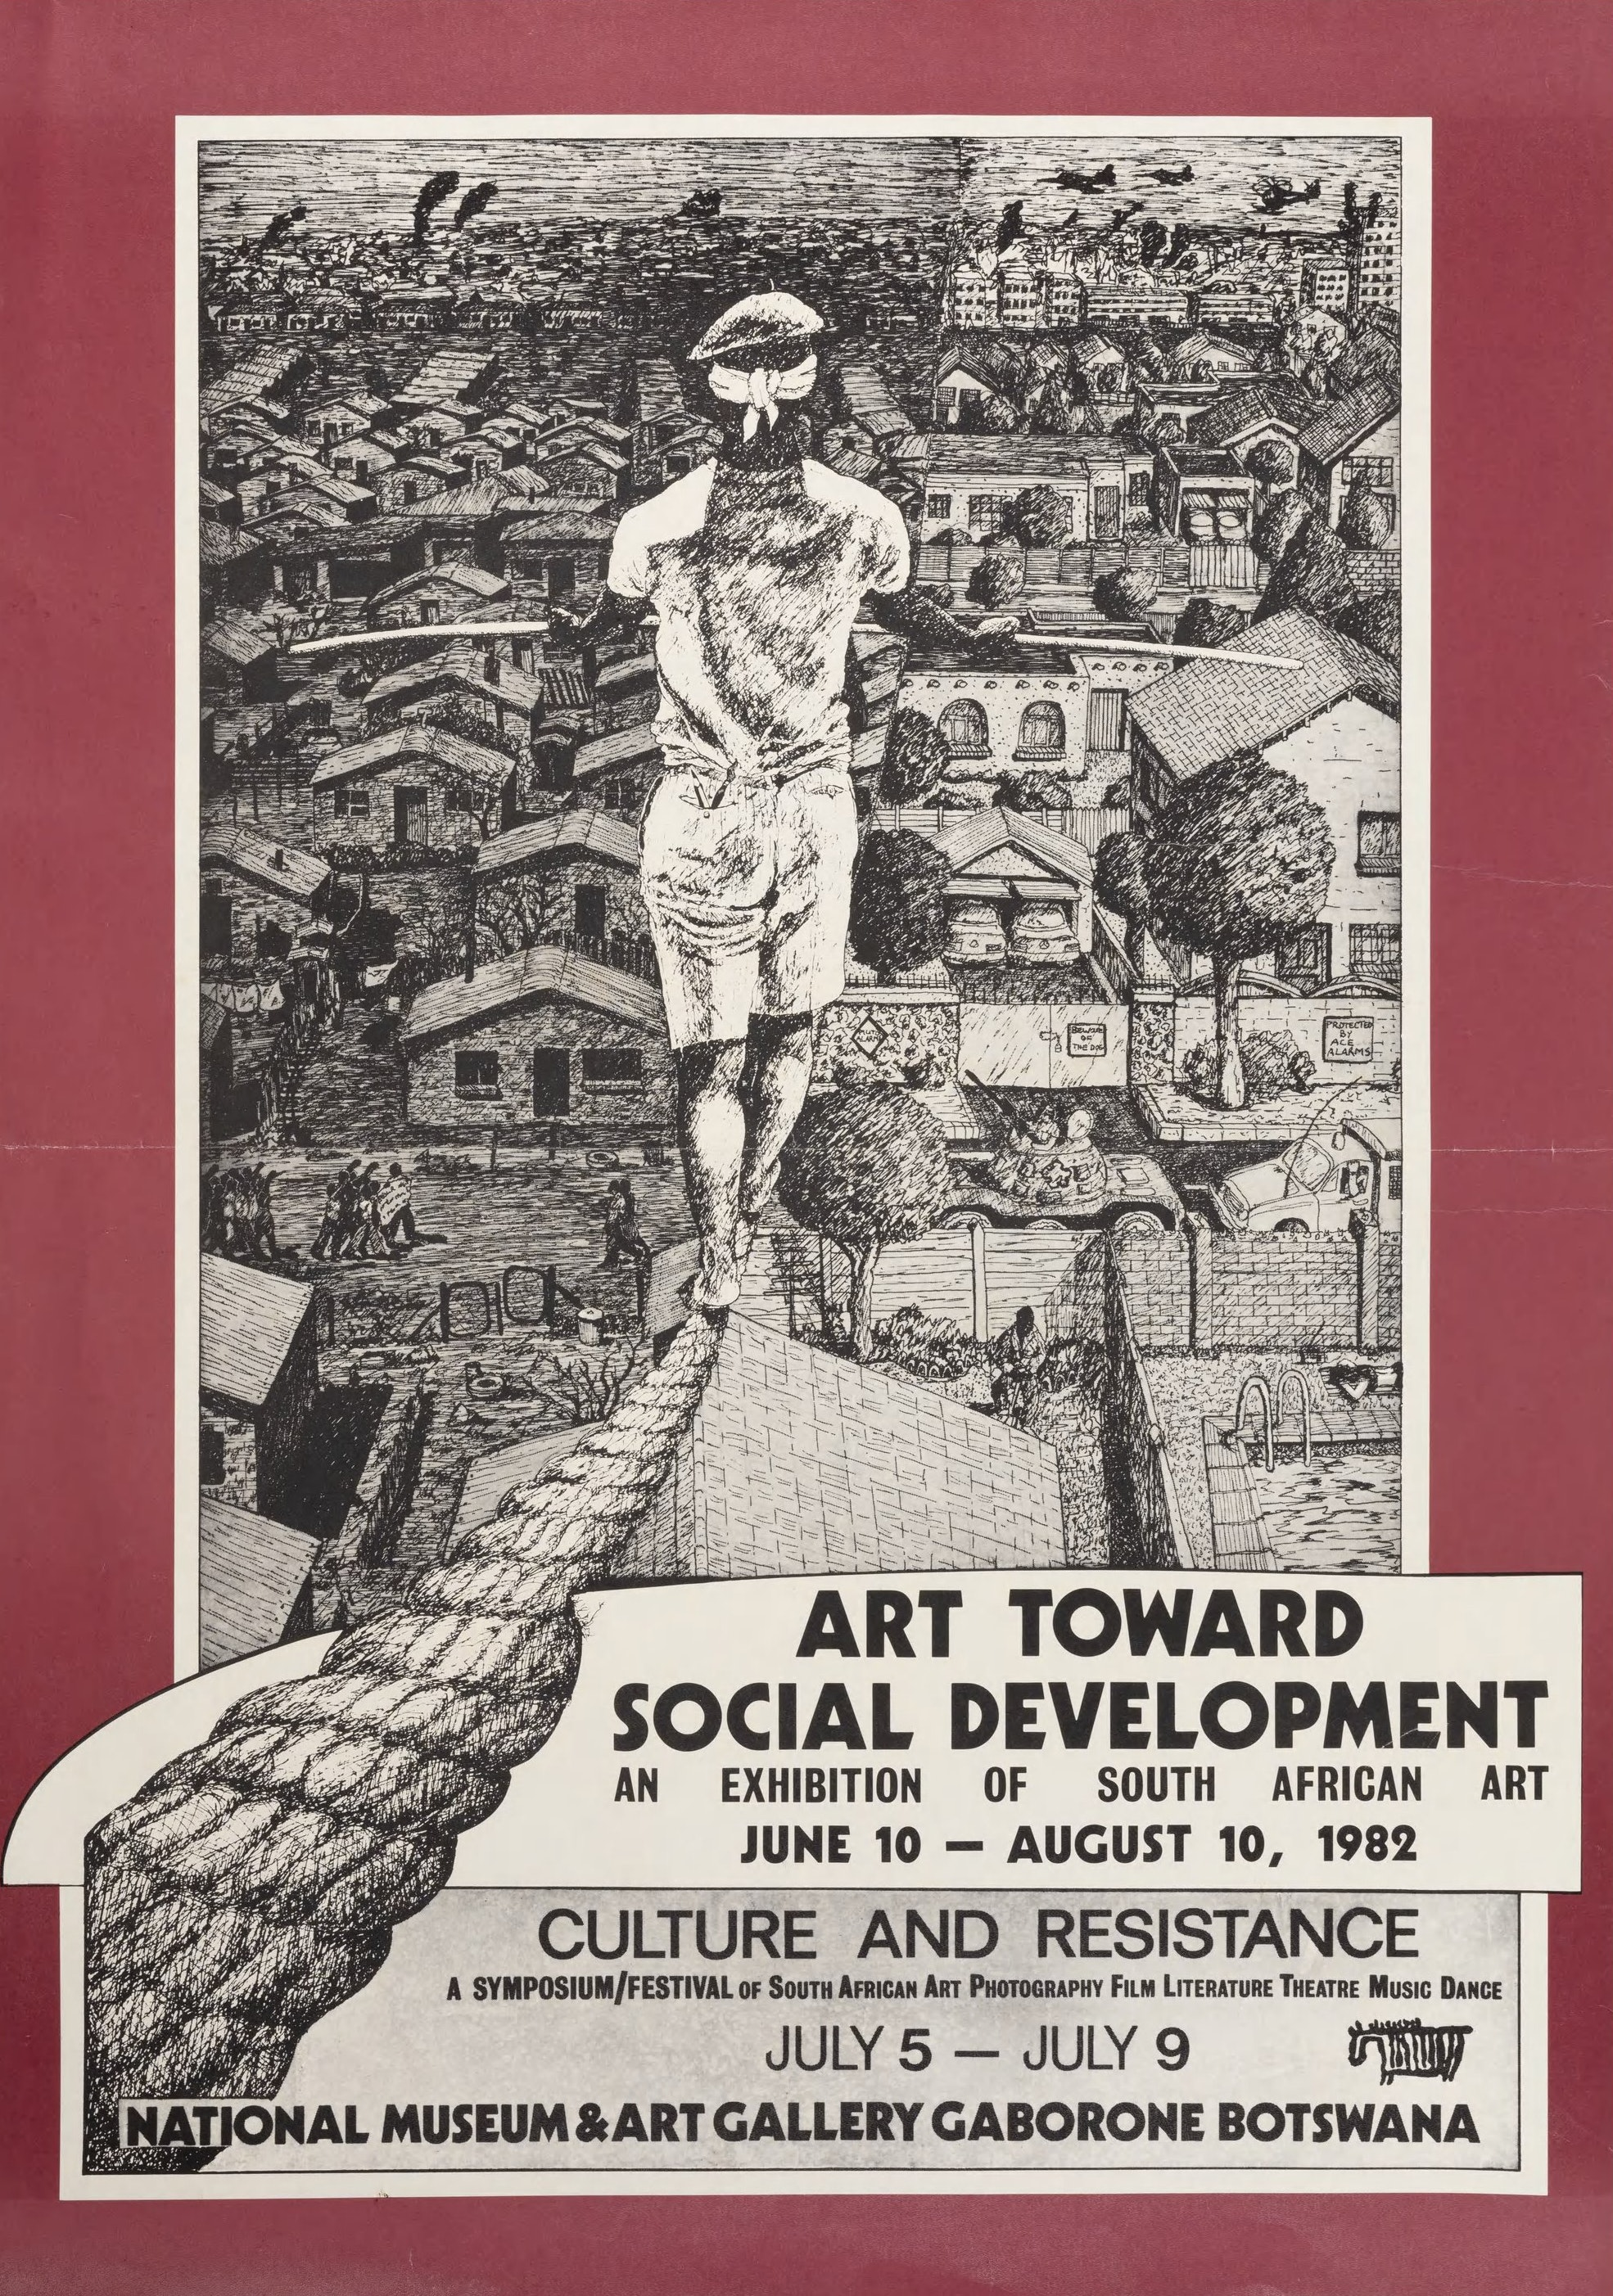 """A black-and-white image shows the back of a man walking across a tightrope over a town. Black lettering says """"Art toward Social Development."""""""